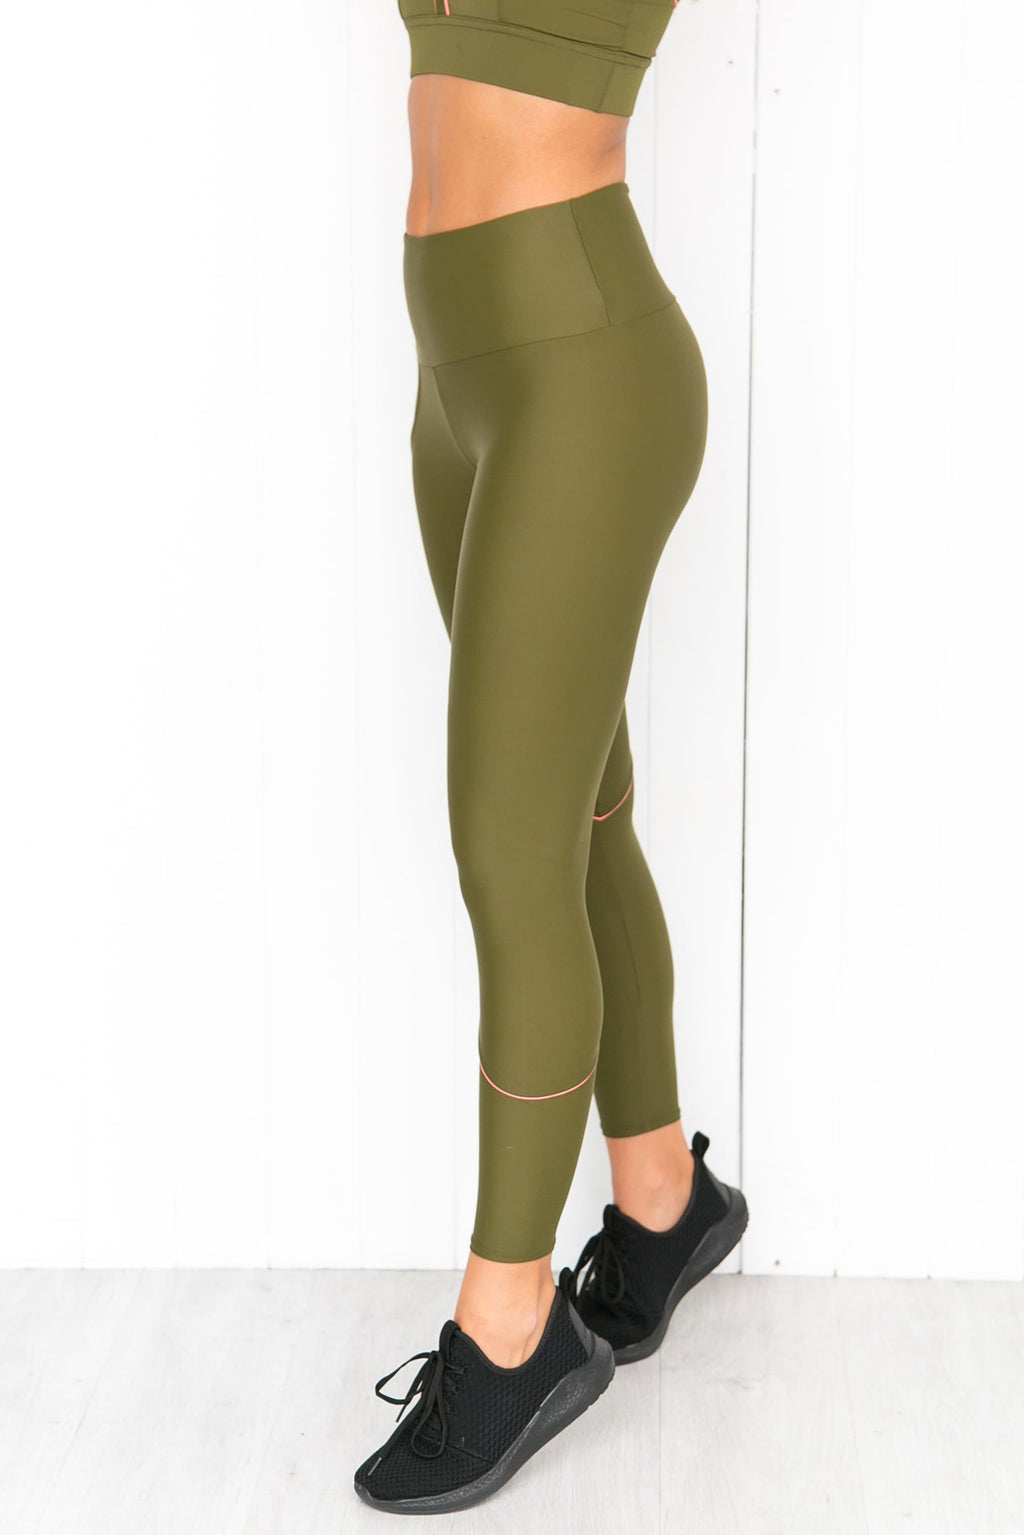 Hyper Beam Midi Leggings - Olive Twist/Coral - PURE DASH